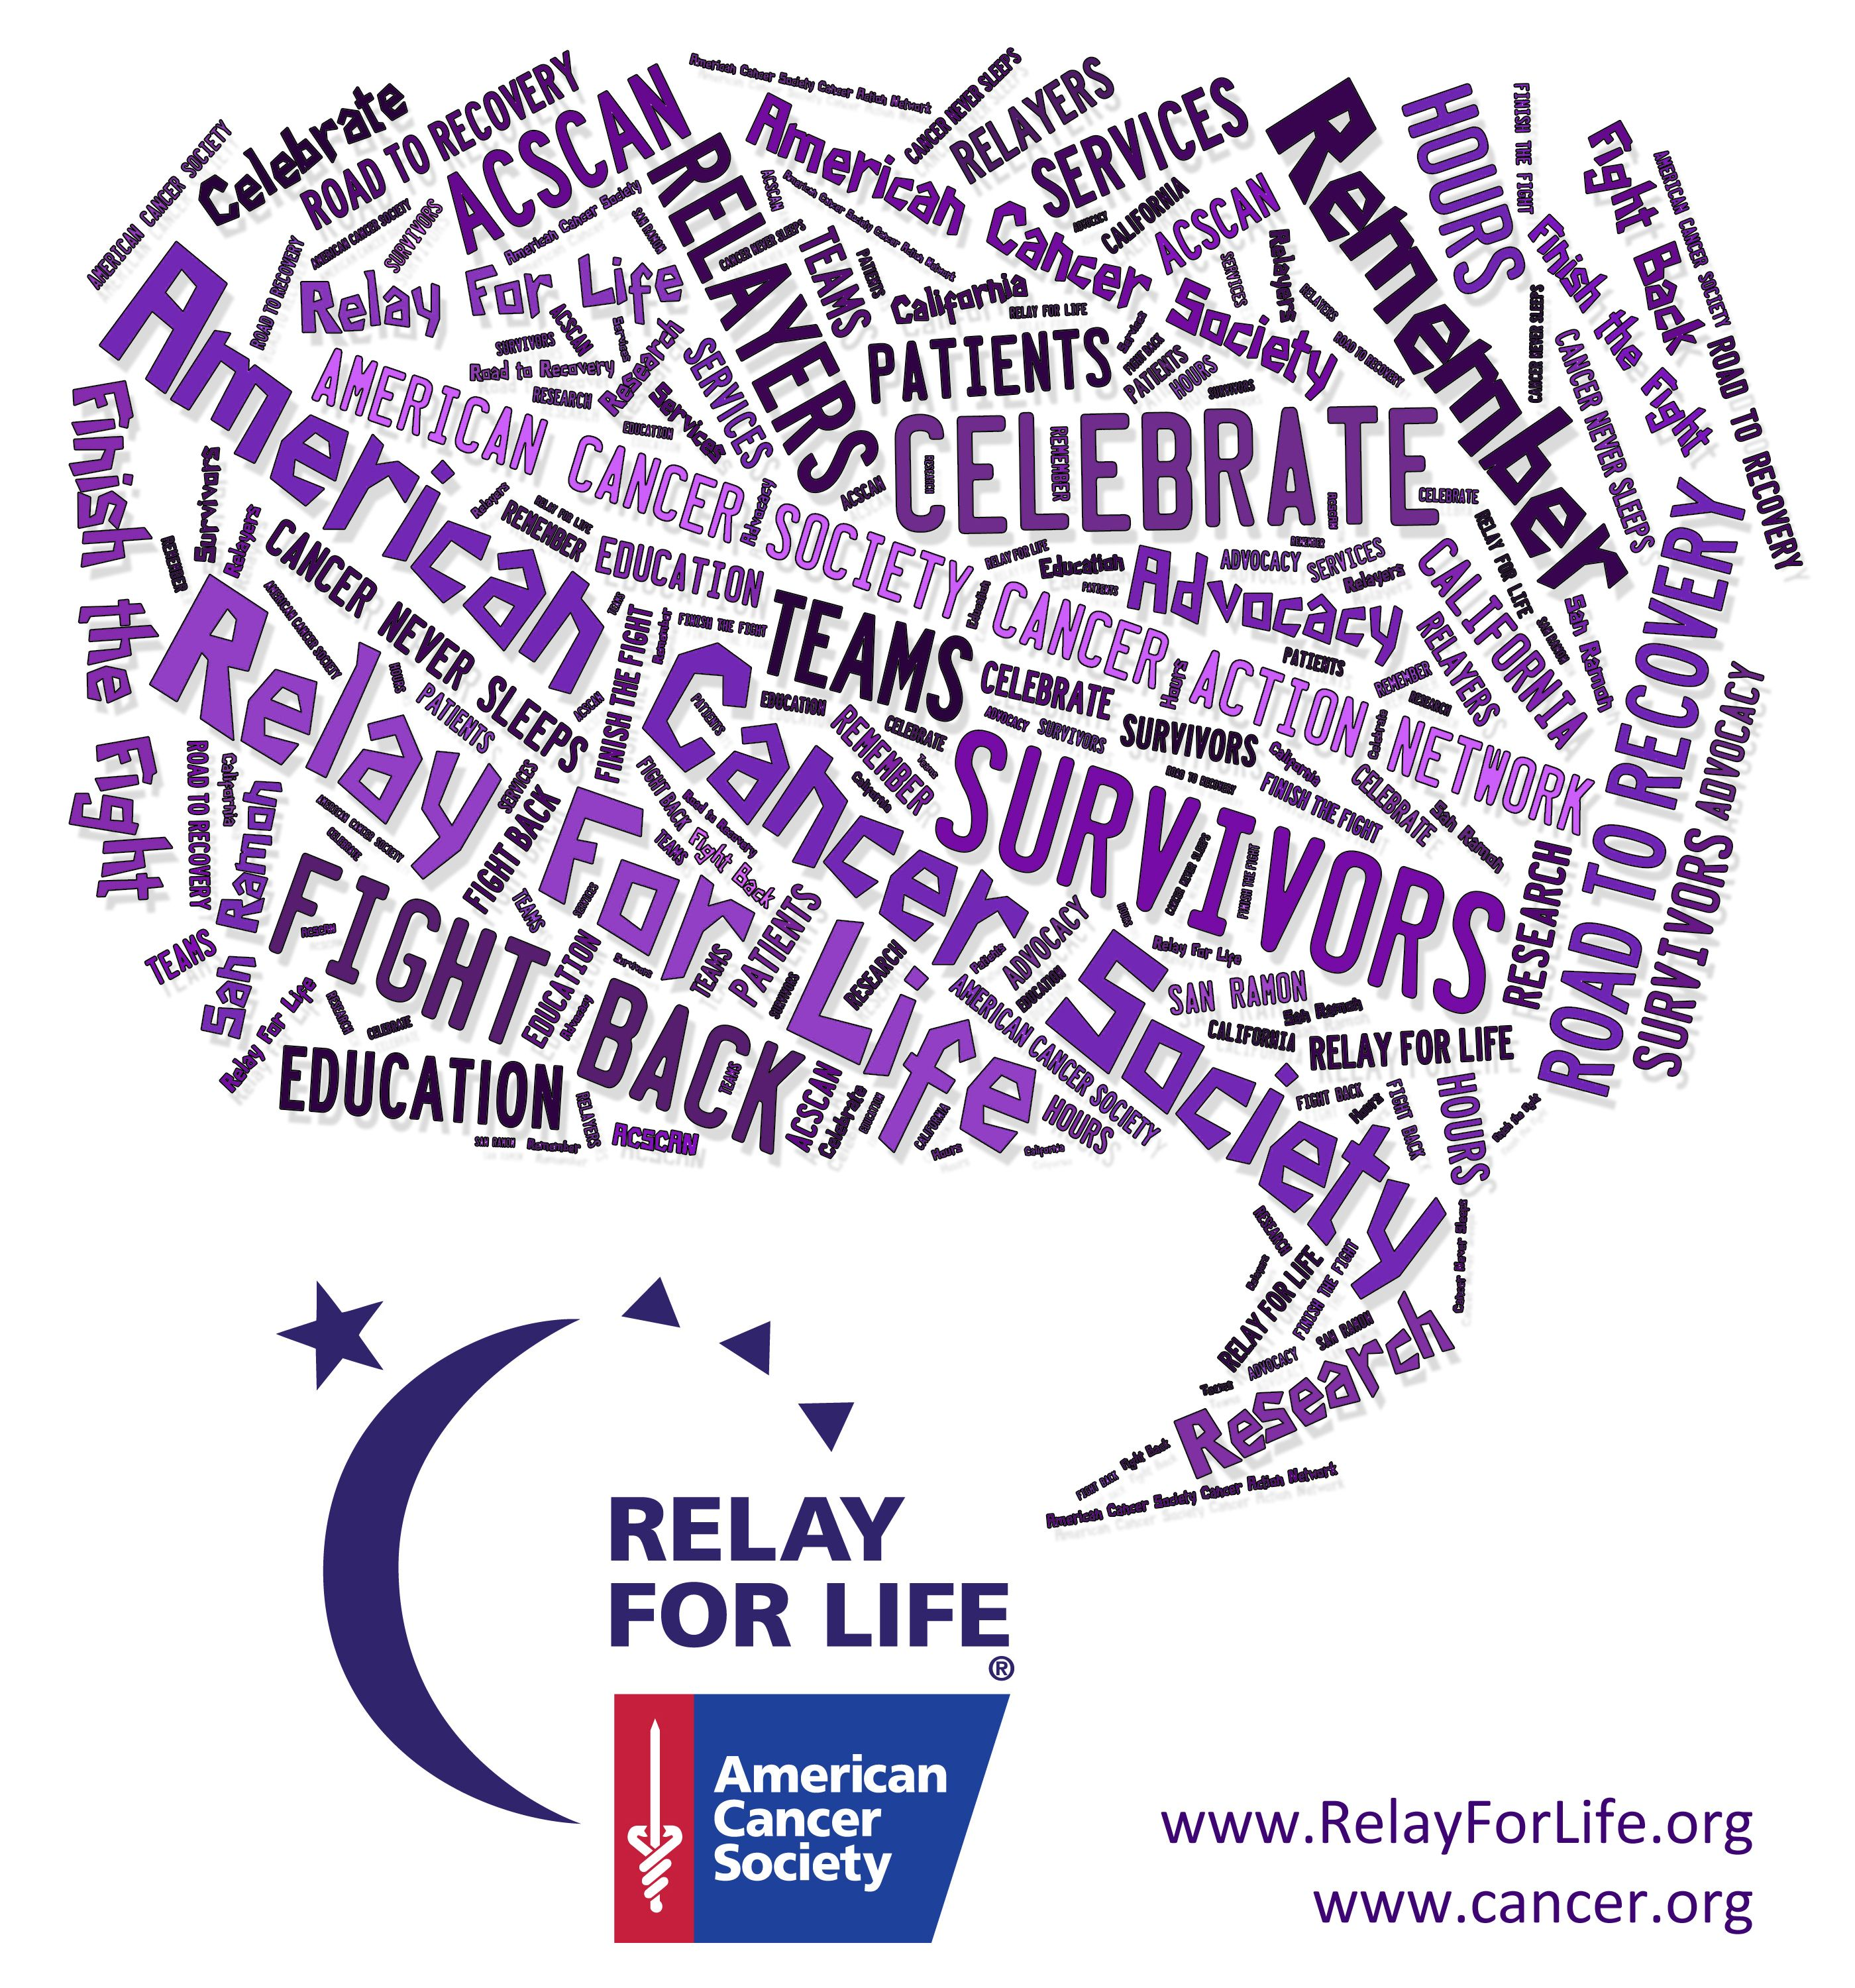 Relay For Life Quotes What Is Relay For Life To Donate Every Year To This Check Plan